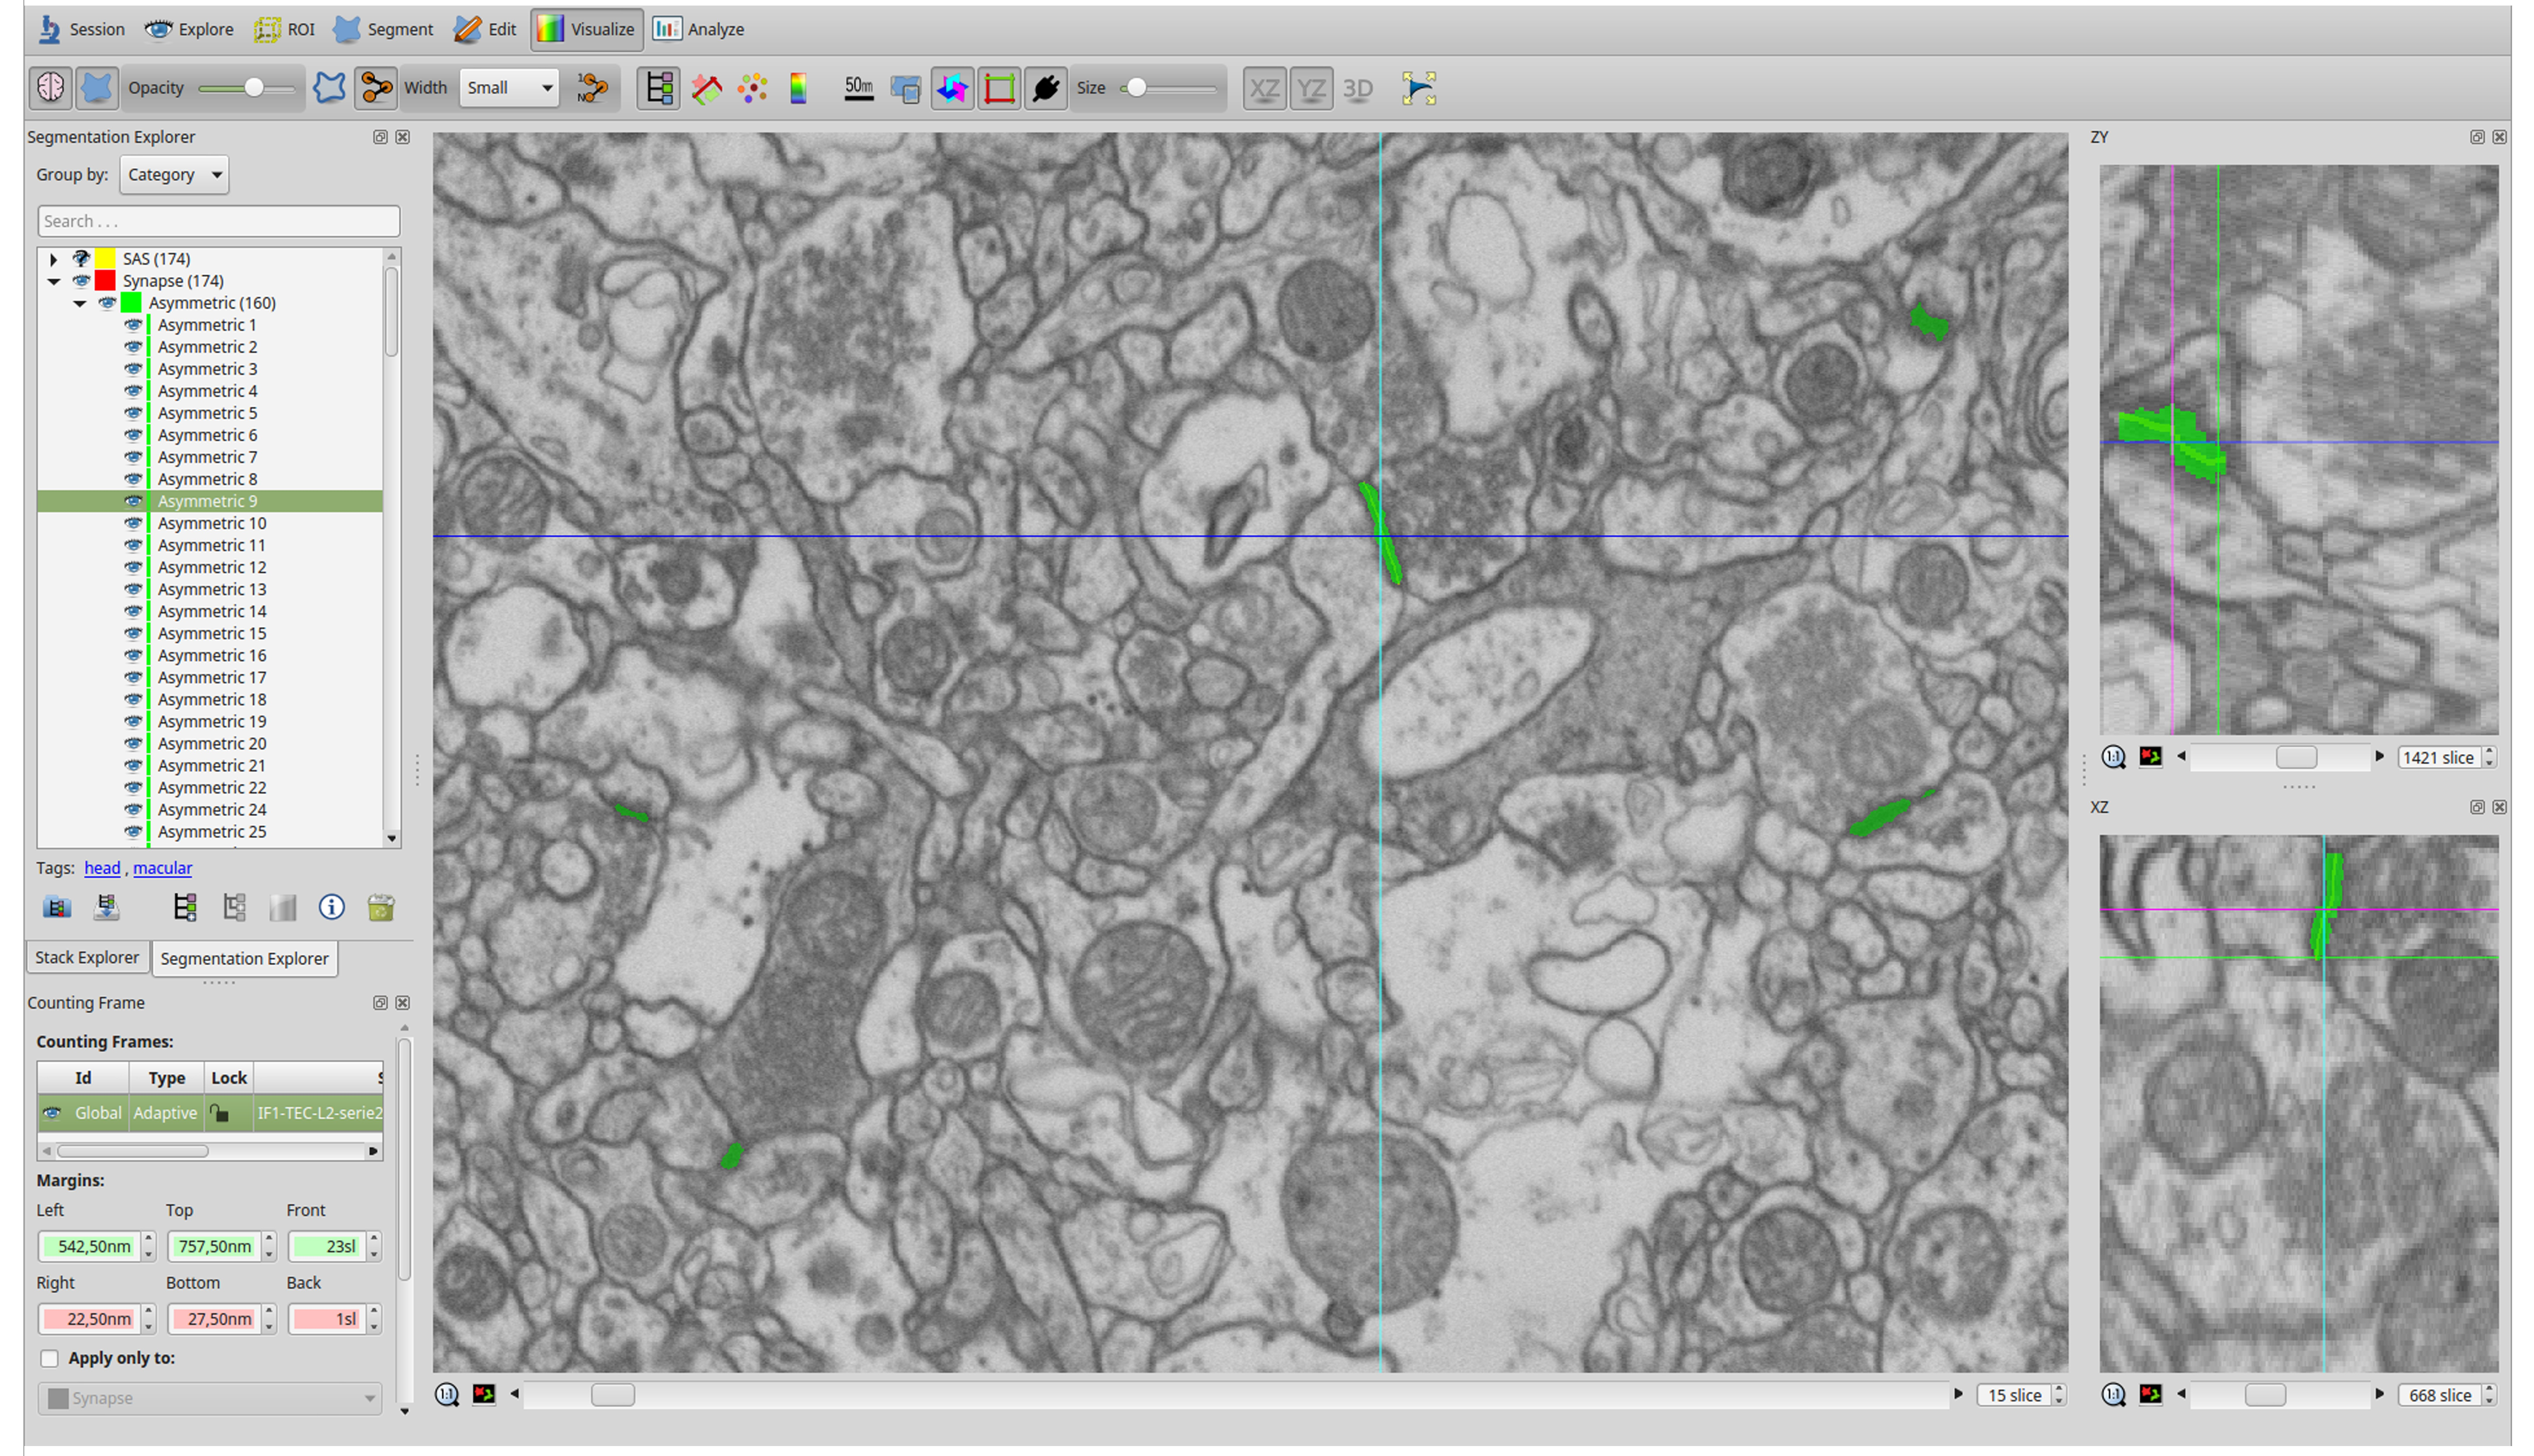 Screenshot of the software user interface (EspINA). In the main window, the sections are viewed through the xy plane (as obtained by FIB/SEM microscopy). The other two orthogonal planes, yz and xz, are also shown in adjacent windows (on the right). The list of identified synapses is shown on the left. Synapses are colored in green. (From Figure 3 of Dominguez-Álvaro et al. 2019, eNeuro).